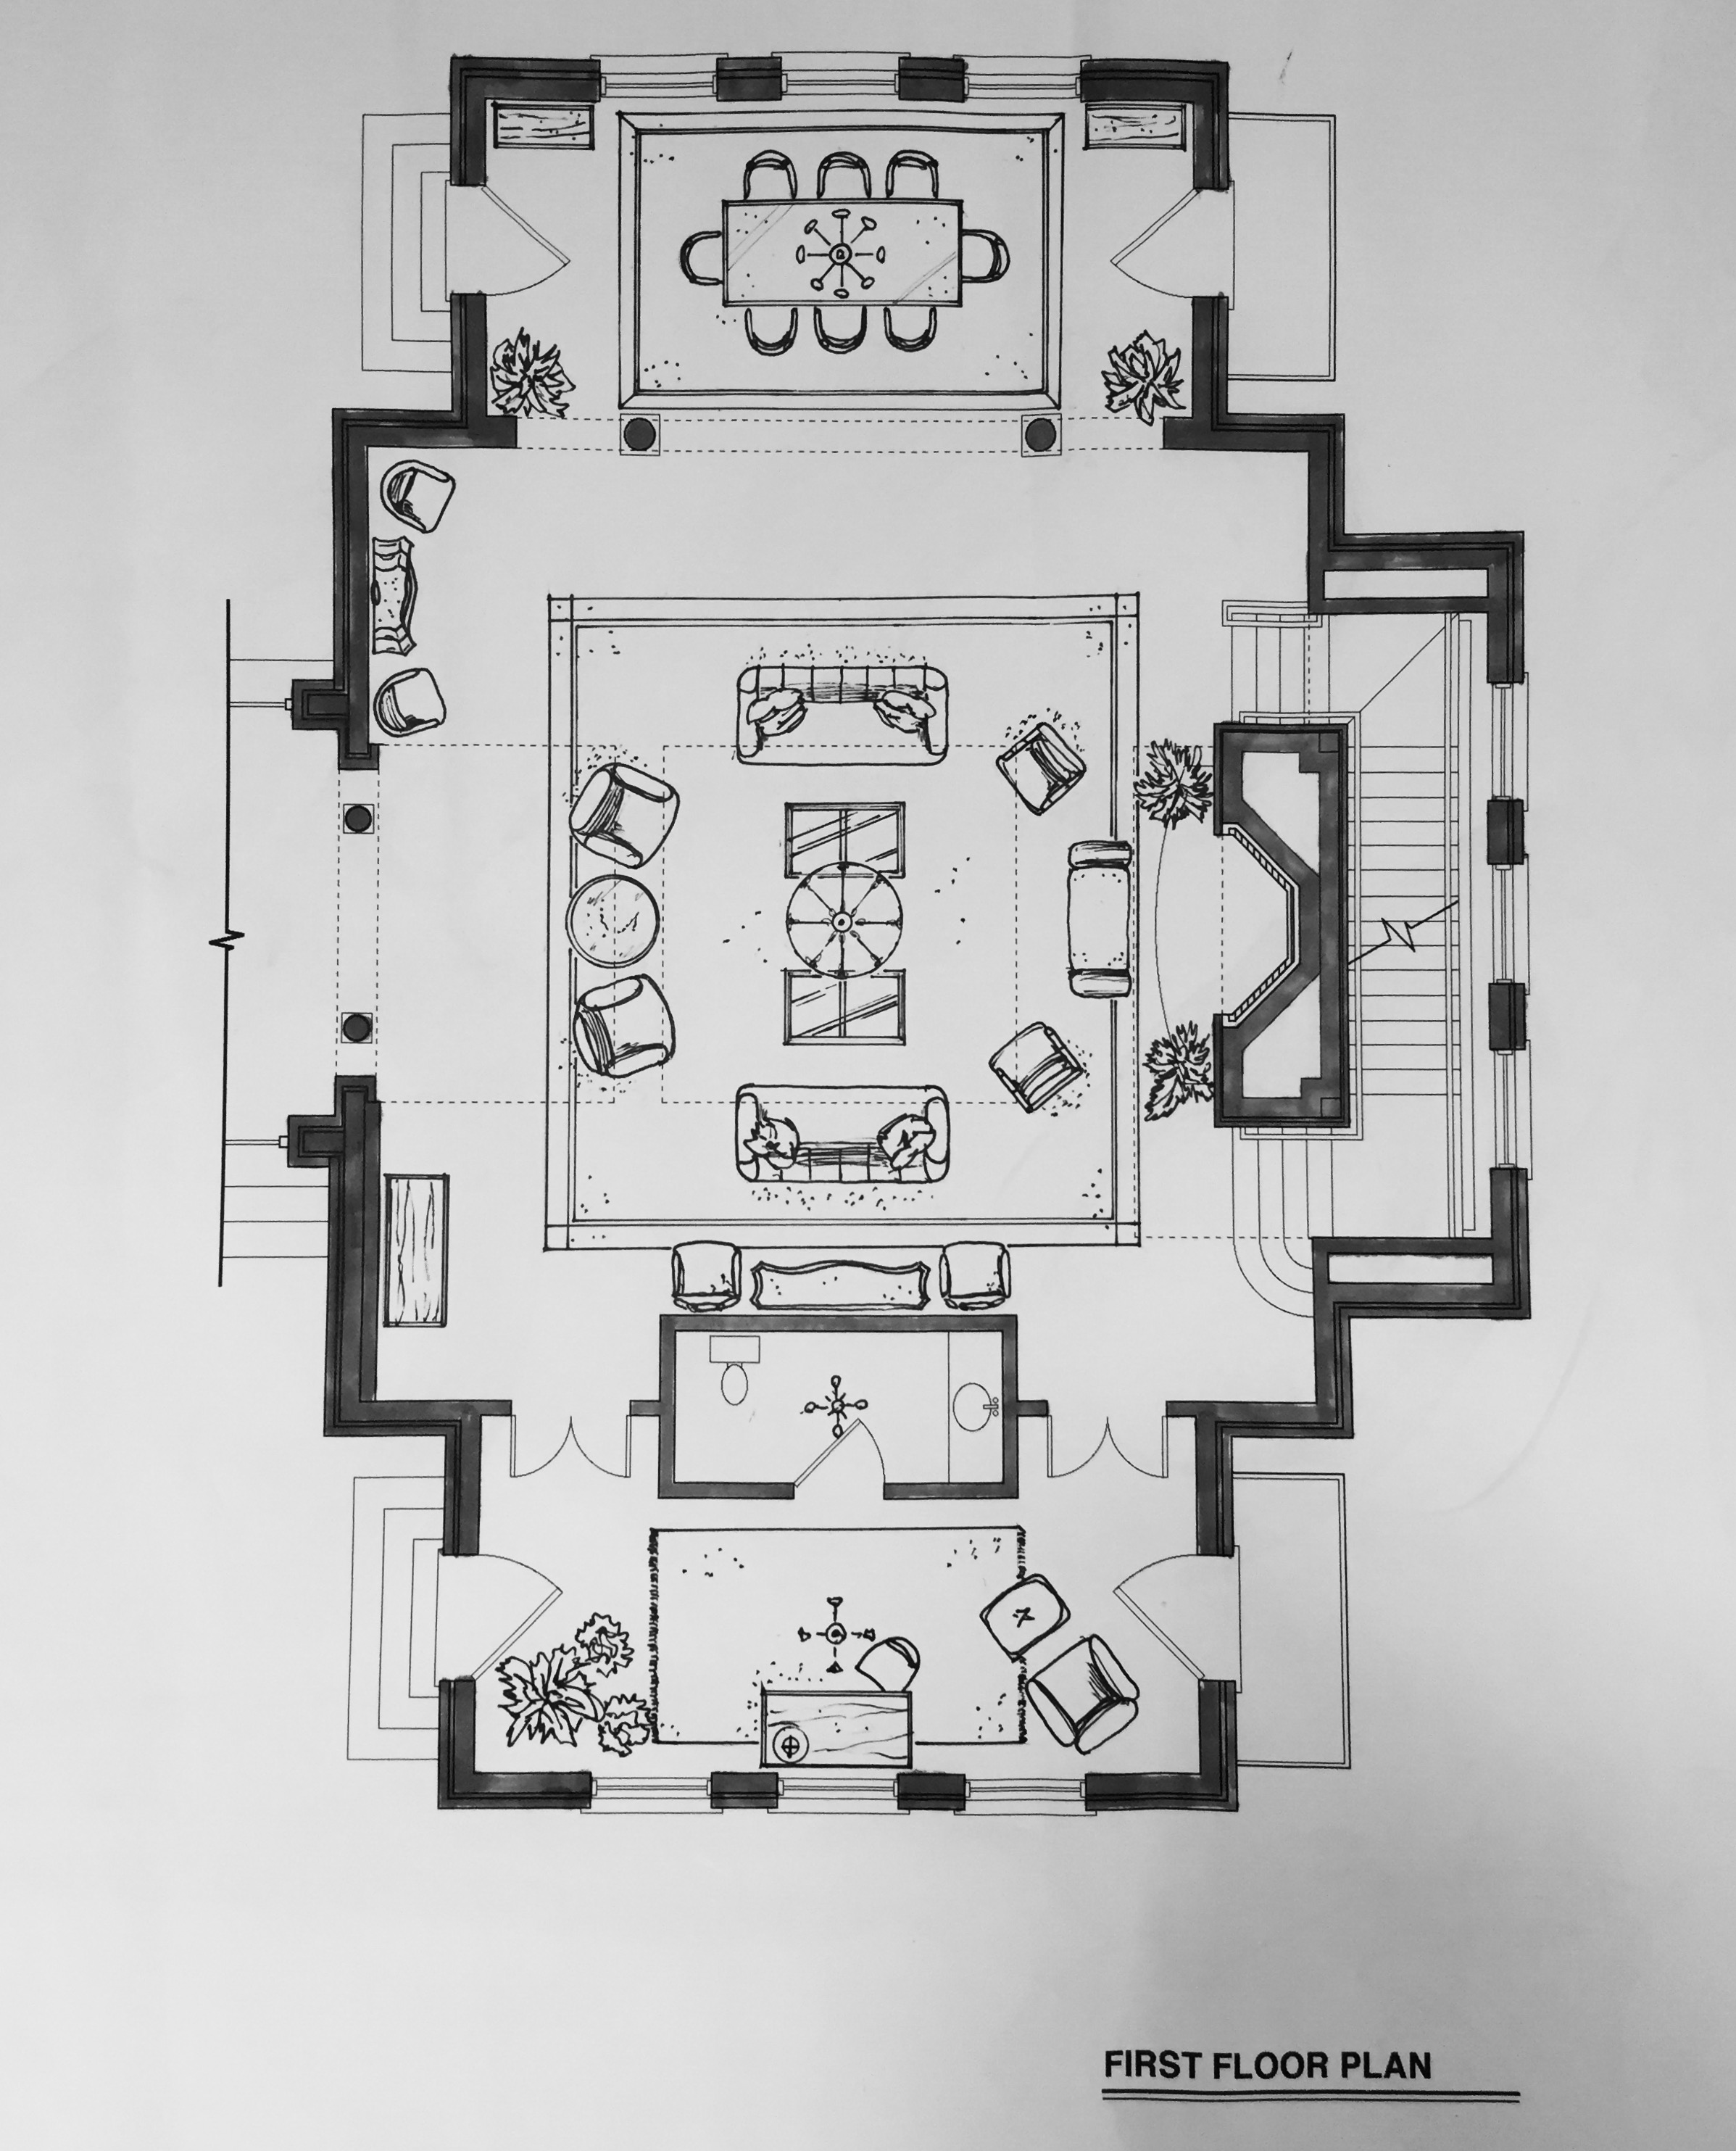 Furniture Planning